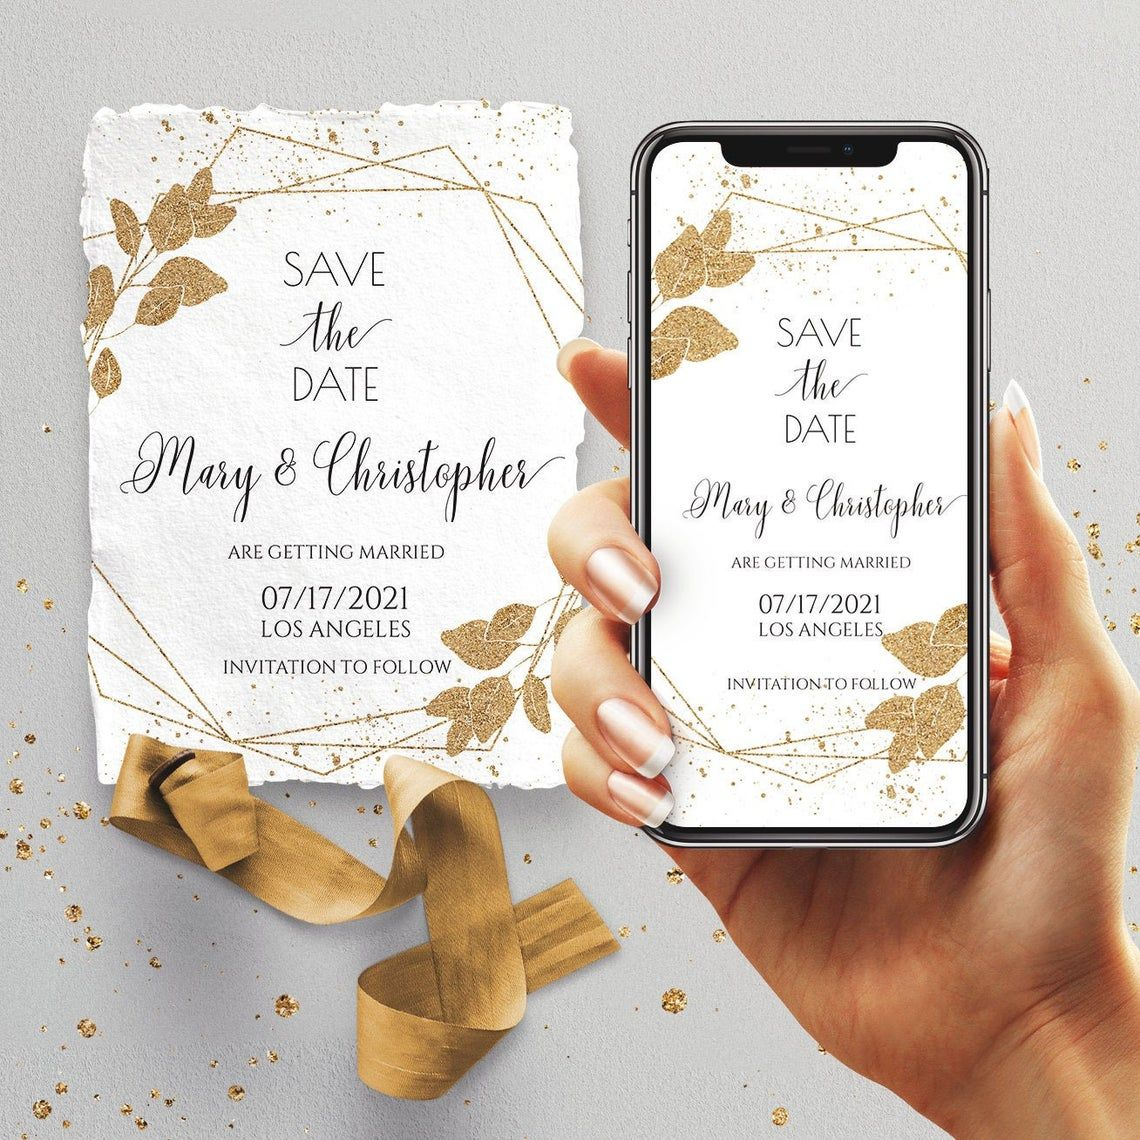 Save The Date Template Download Electronic Save The Date Card 100 Editable Instant Download Printable Wedding Invitation Electronic Save The Date Printable Wedding Invitations Save The Date Templates